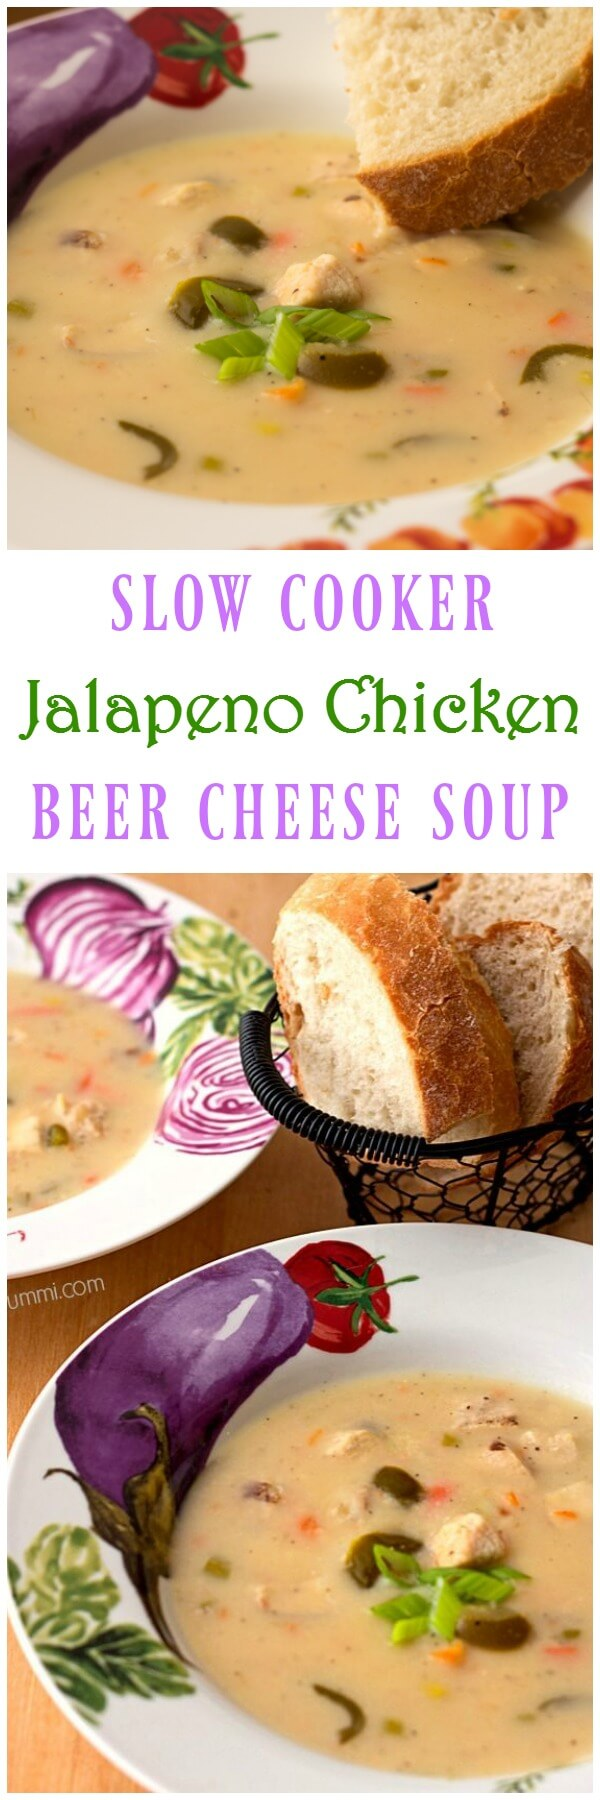 Easy Slow Cooker Jalapeno Chicken Beer Cheese Soup Recipe from ItsYummi.com - This zesty soup will warm you up on the coldest of days! | ItsYummi.com